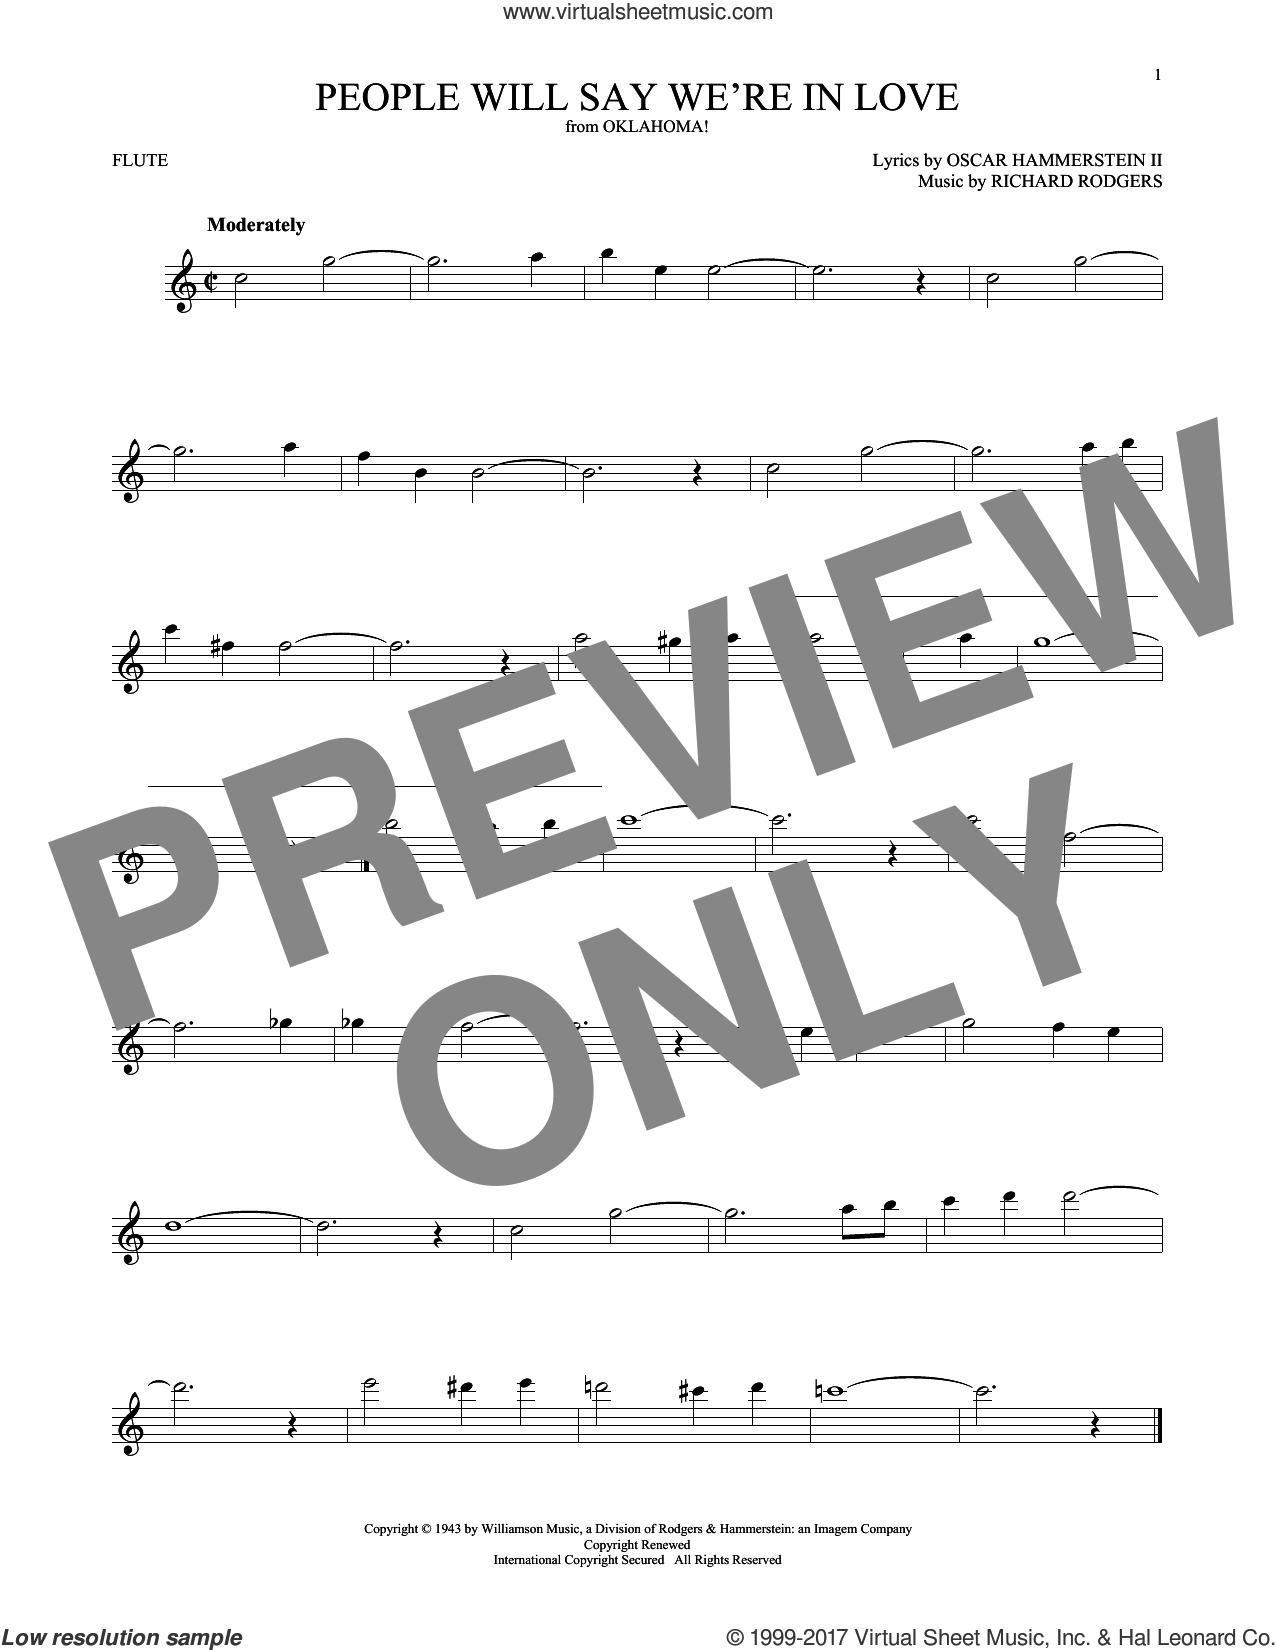 People Will Say We're In Love sheet music for flute solo by Rodgers & Hammerstein, Oscar II Hammerstein and Richard Rodgers. Score Image Preview.